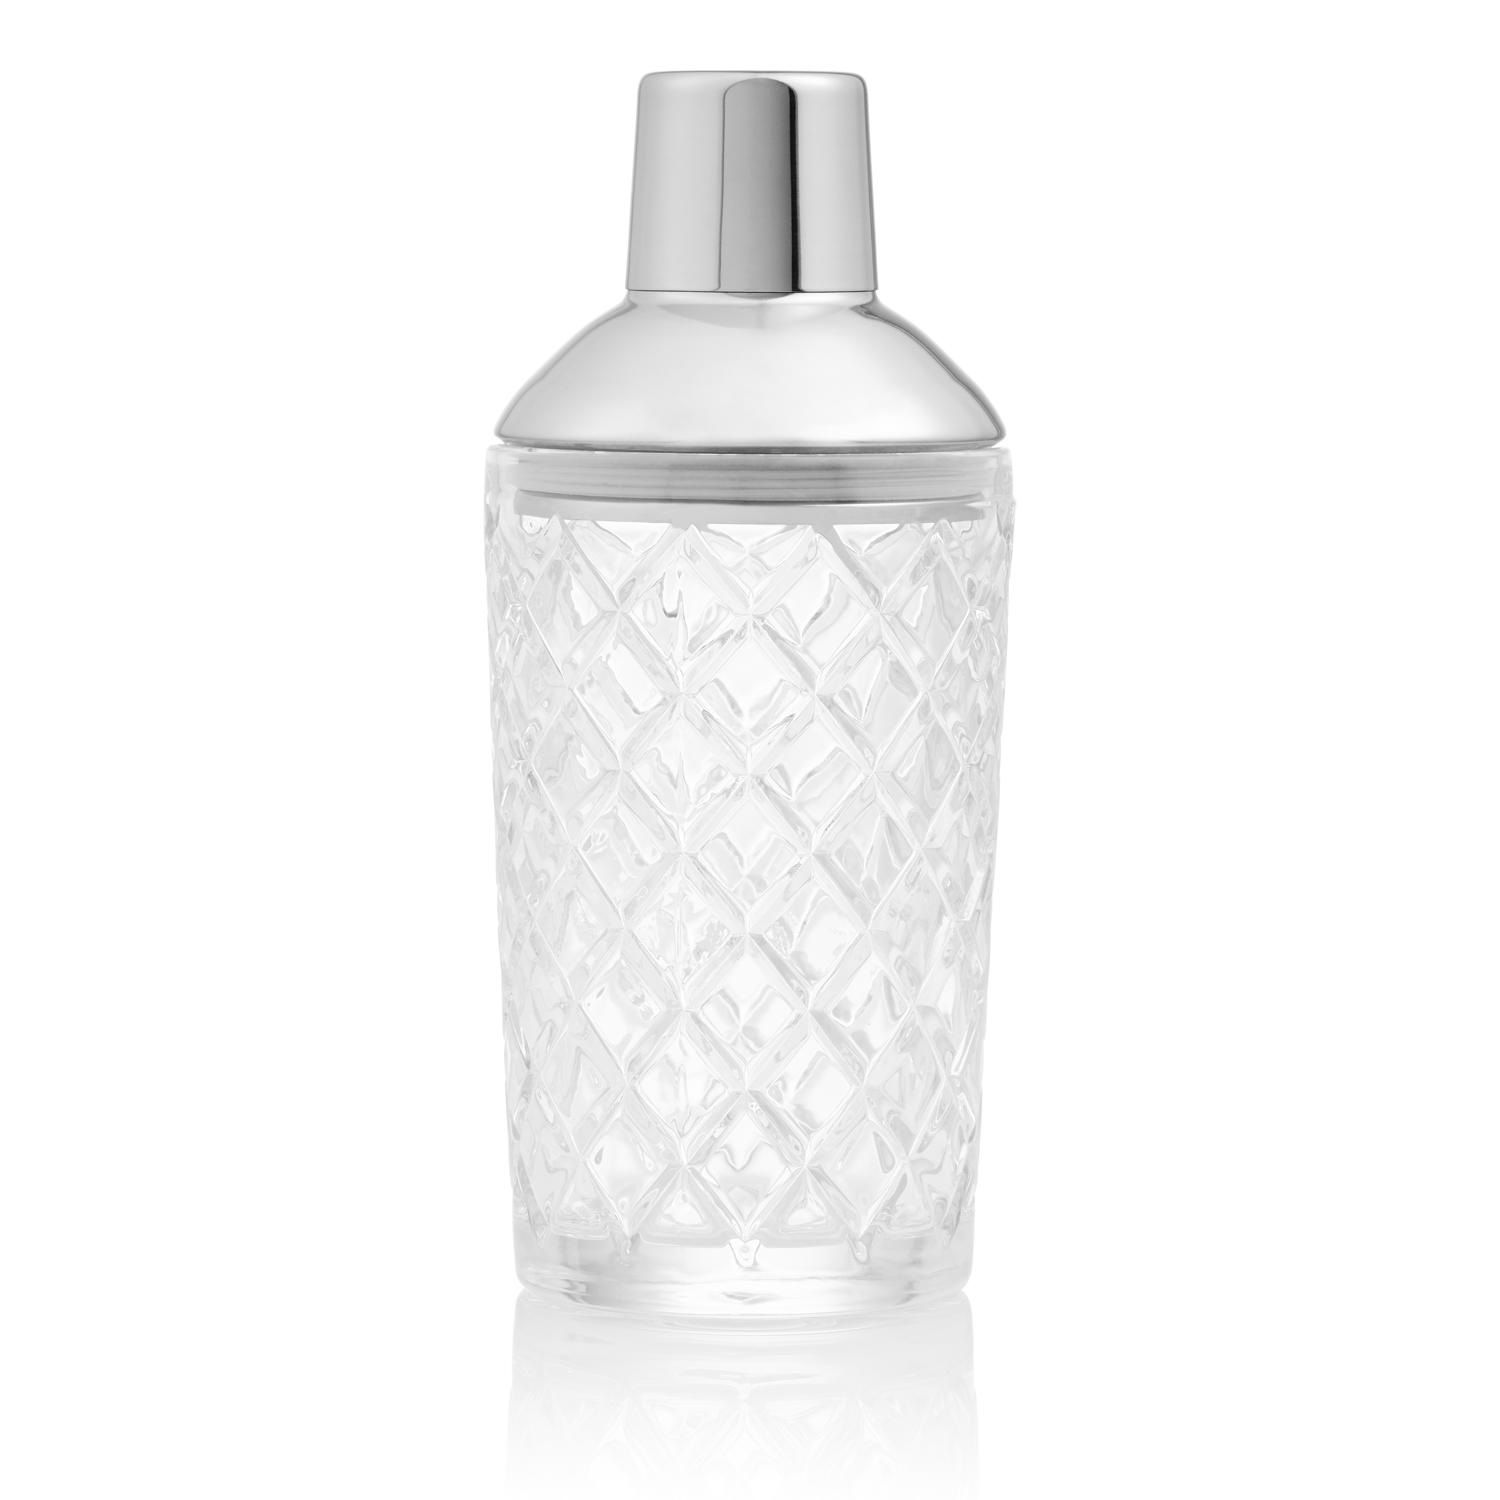 Uberstar Glass Cocktail Shaker - Only £24.99